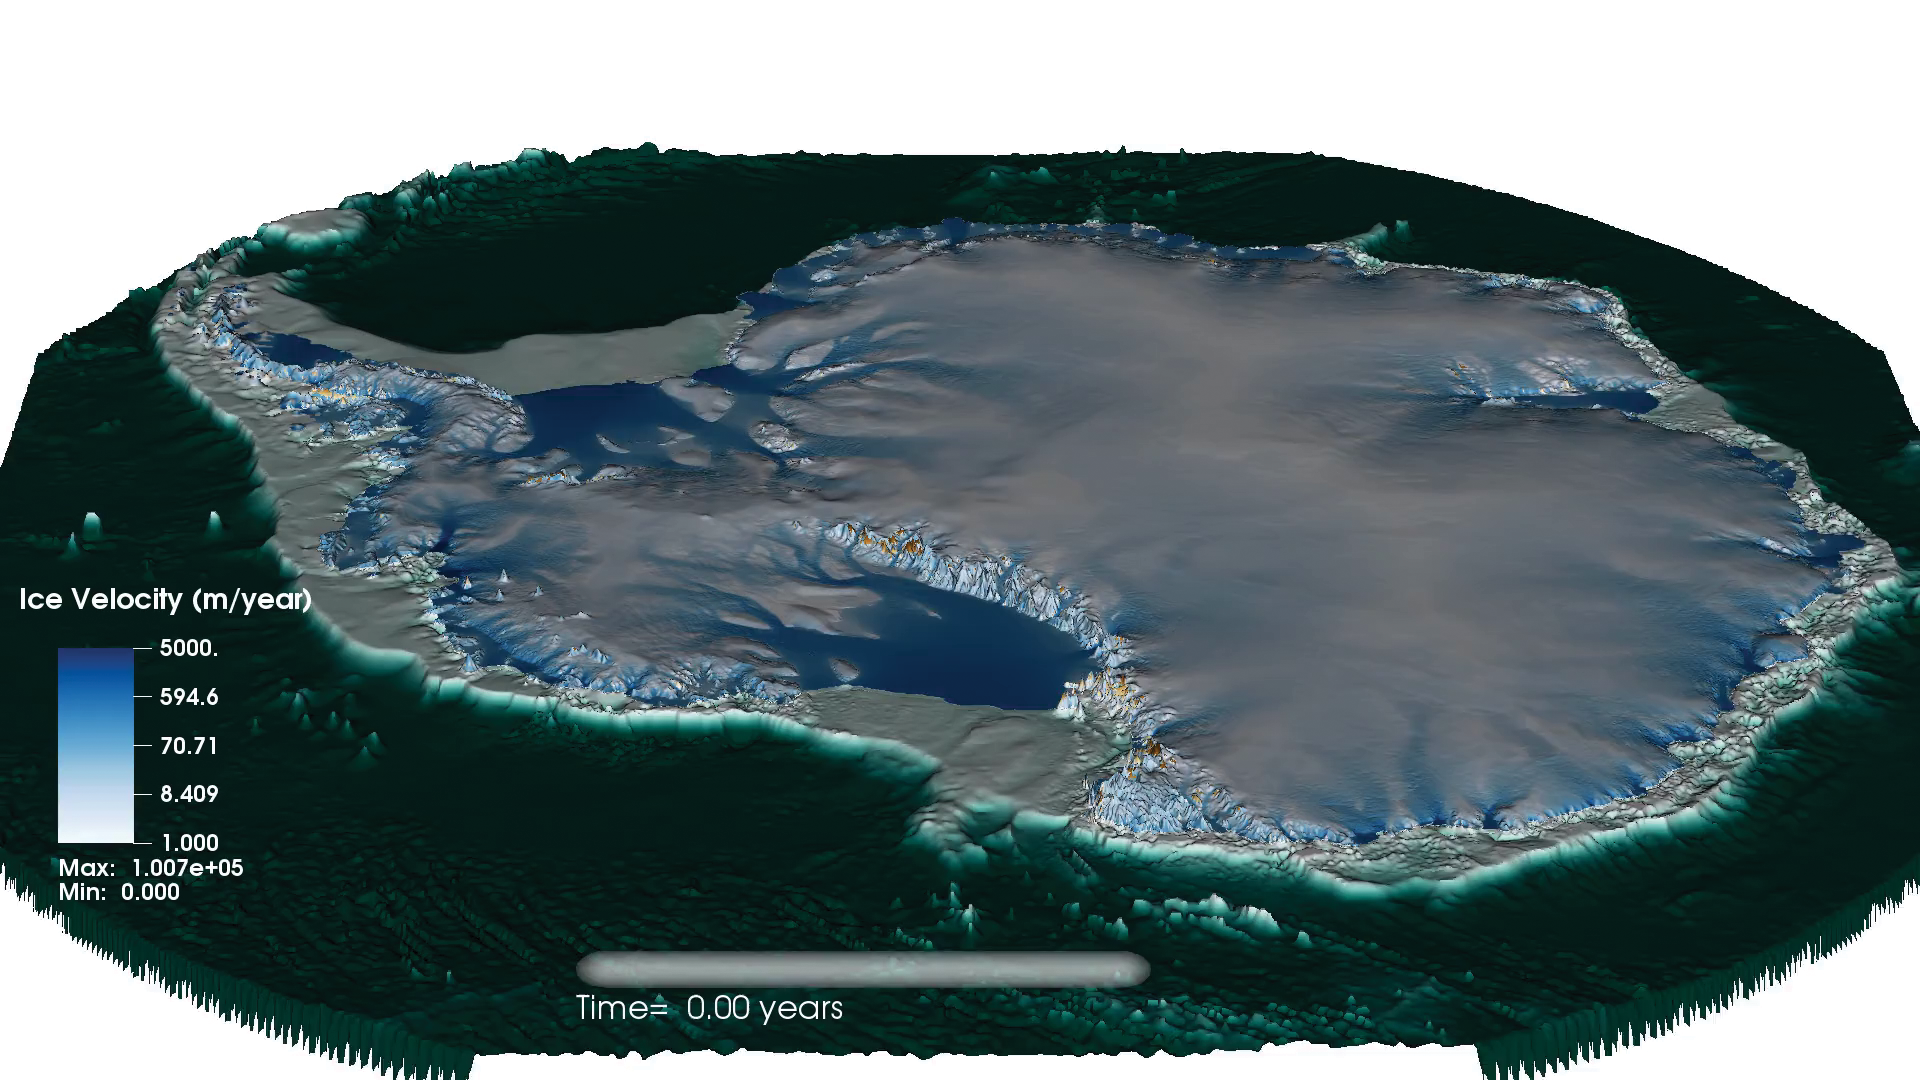 A computer model of Antartica showing how ice is flowing and changing over time.